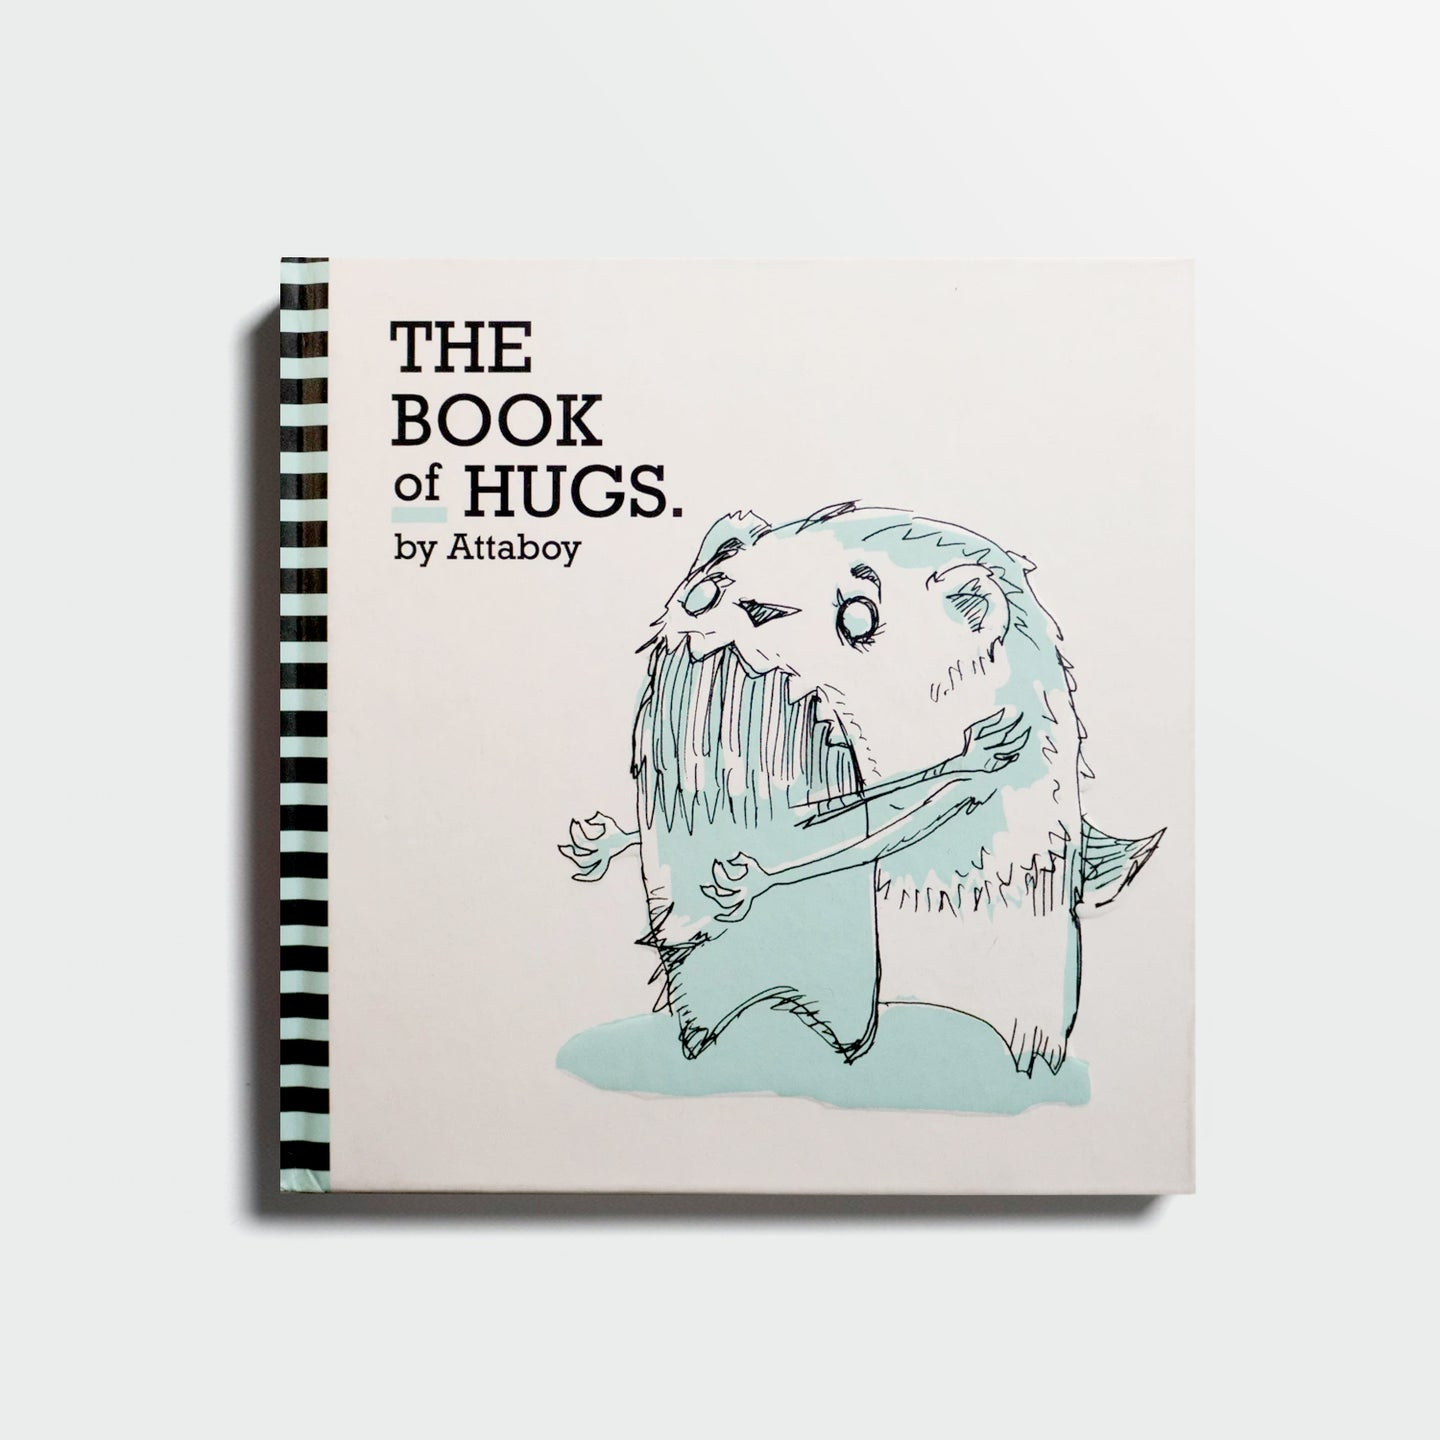 ATTABOY | The book of hugs